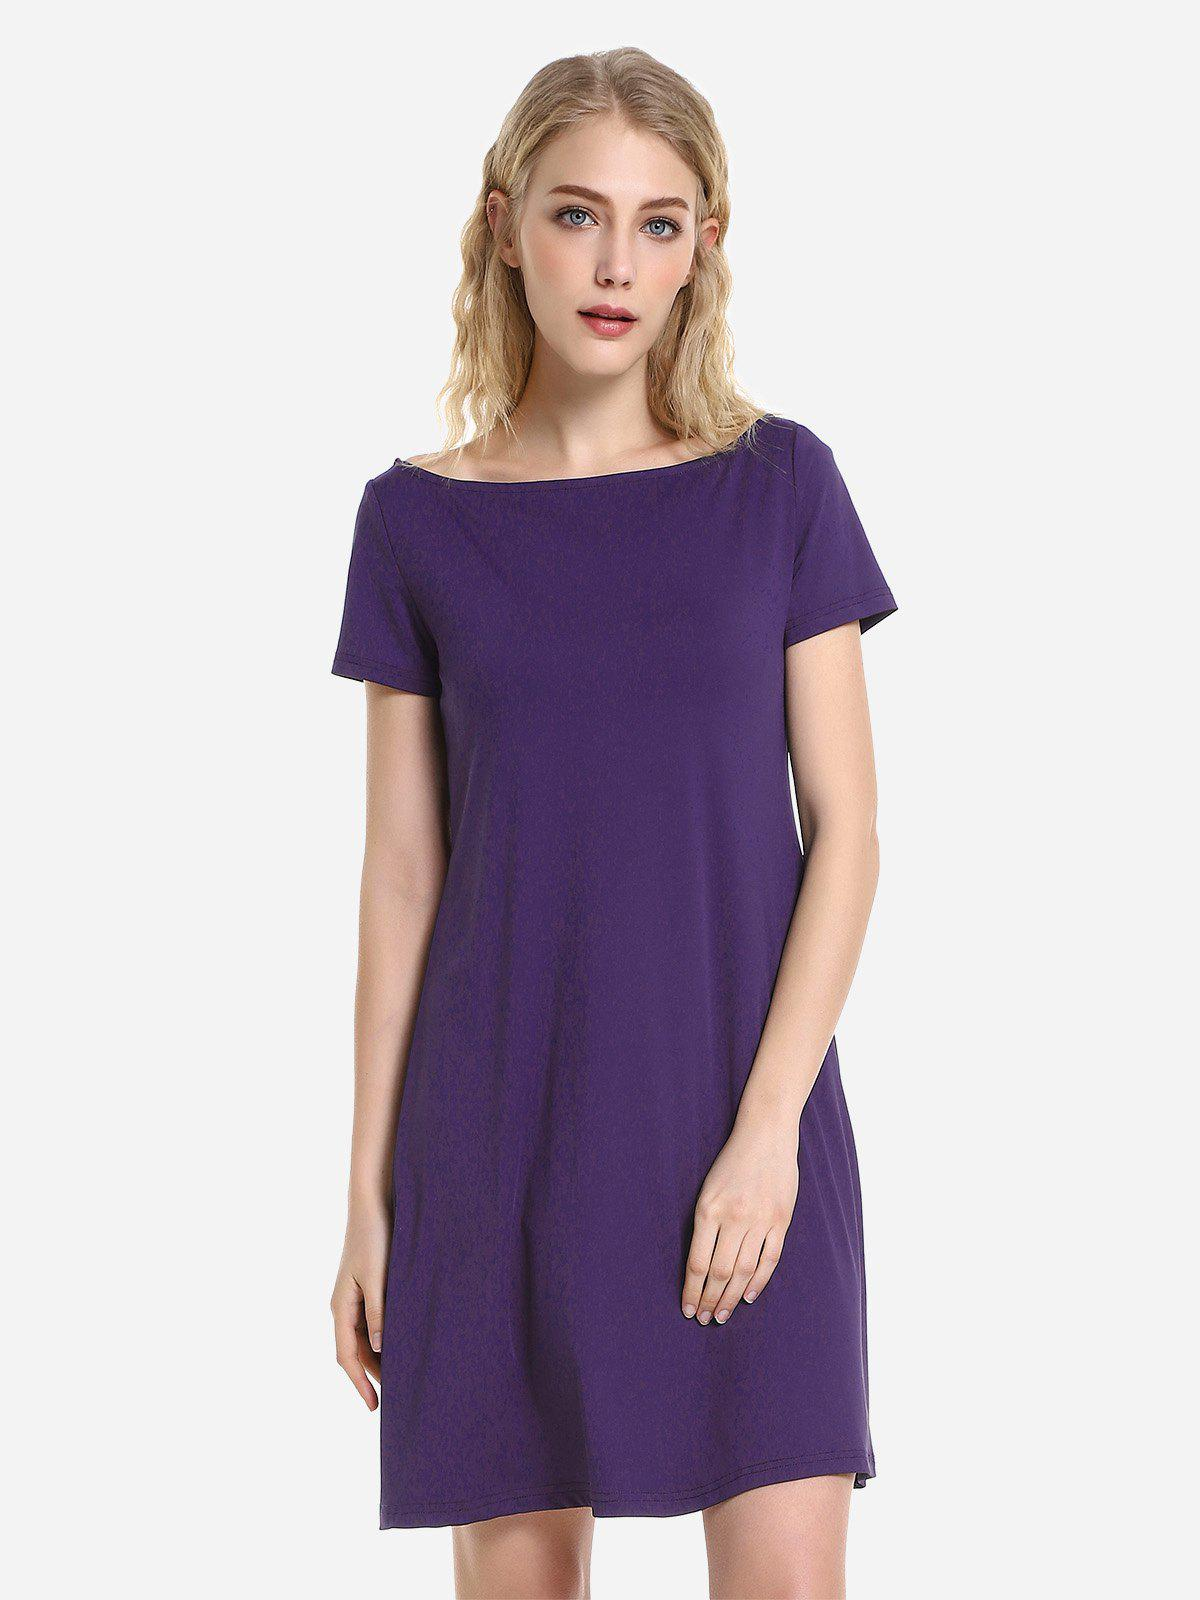 ZAN.STYLE Dolman T-Shirt Dress - DEEP PURPLE S